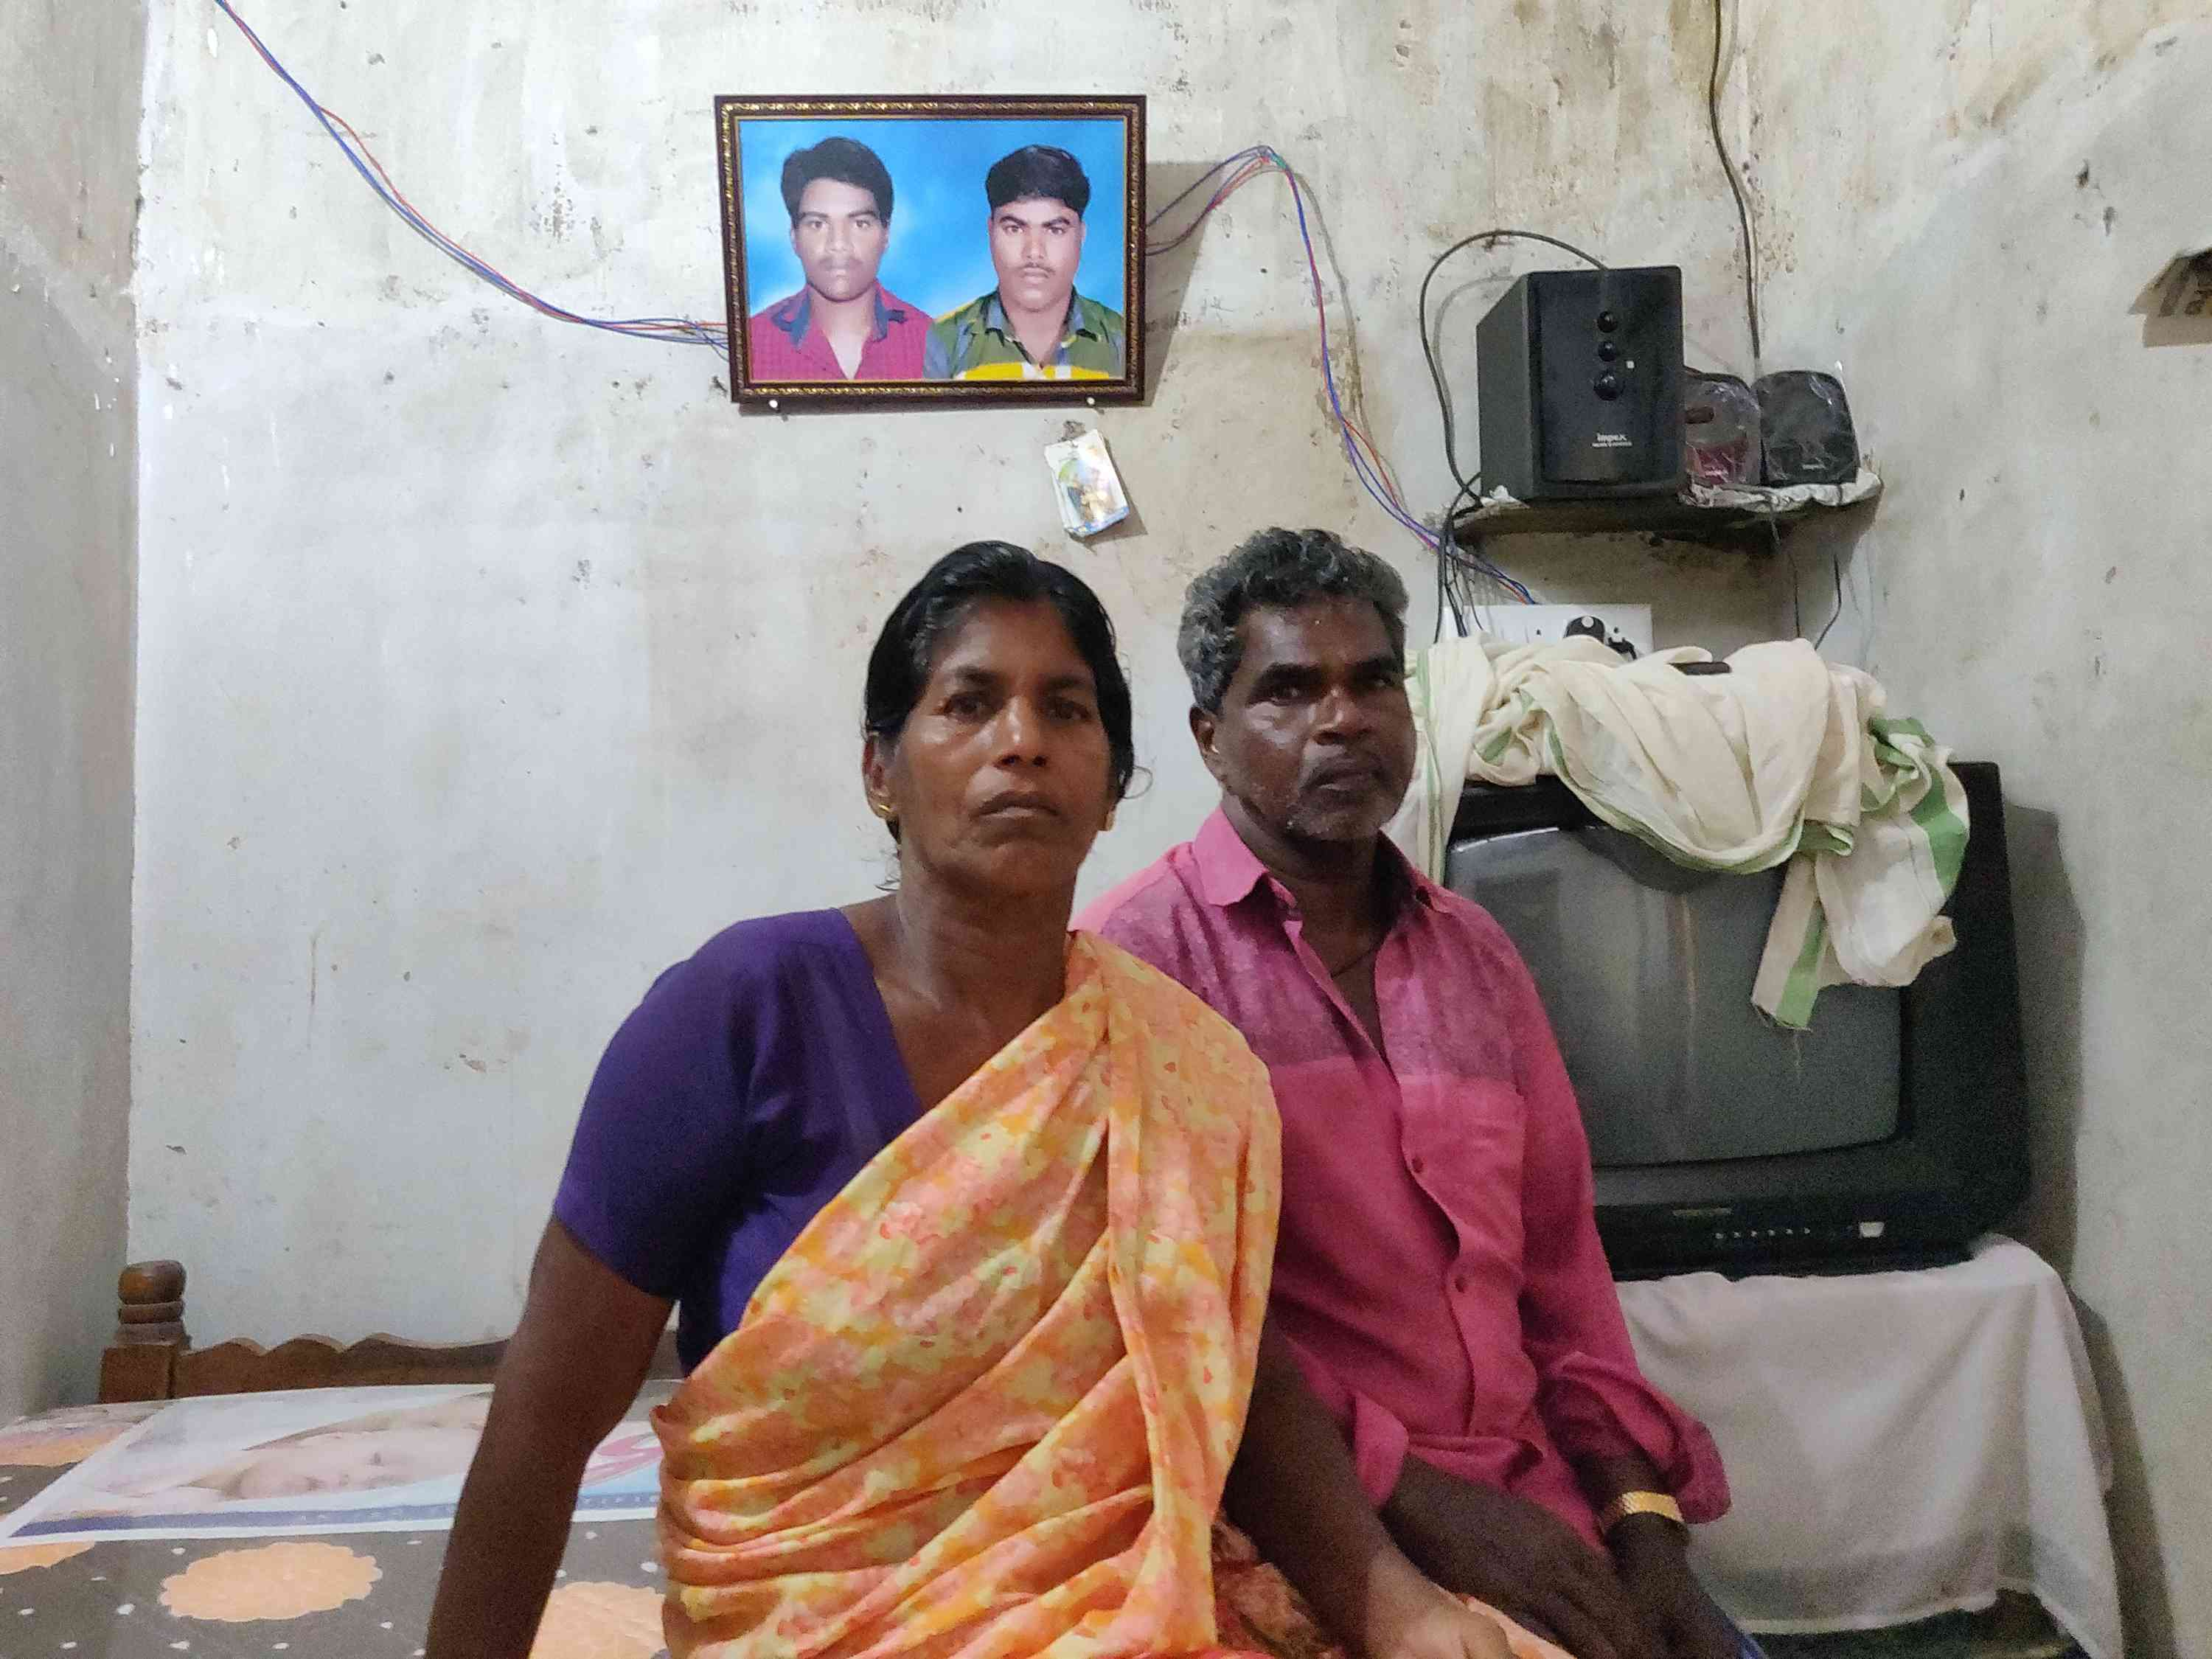 Muthappan Aralappan and Elsy at their rented home in Vizhinjam. A photo of their son John Muthappan and his cousin Rajan Lawrence – both of whom died in Cyclone Ockhi – hangs on the wall.